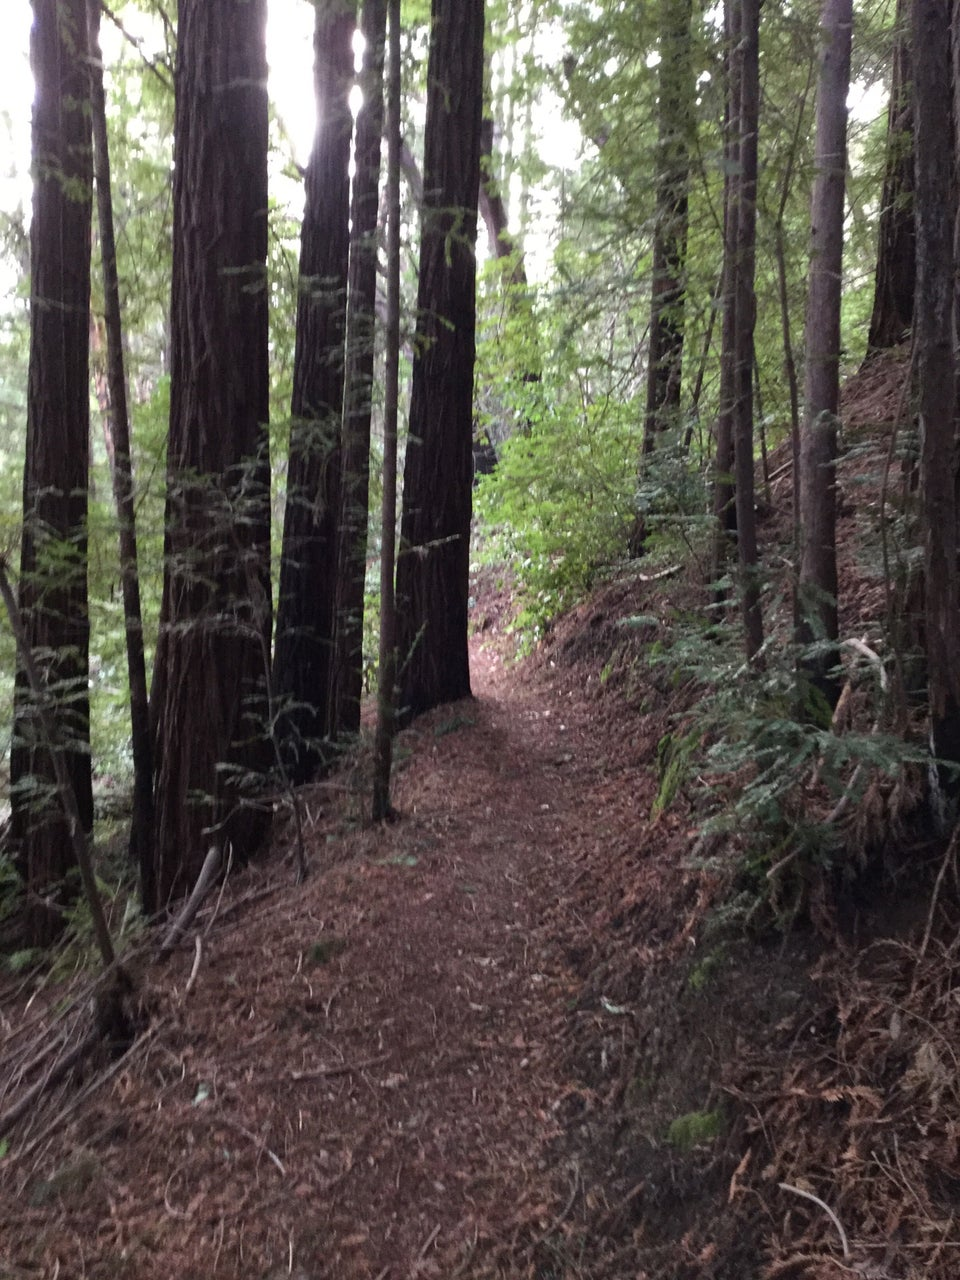 Dense tall trees, only their trunks visible on either side of a narrow but smooth dirt trail.